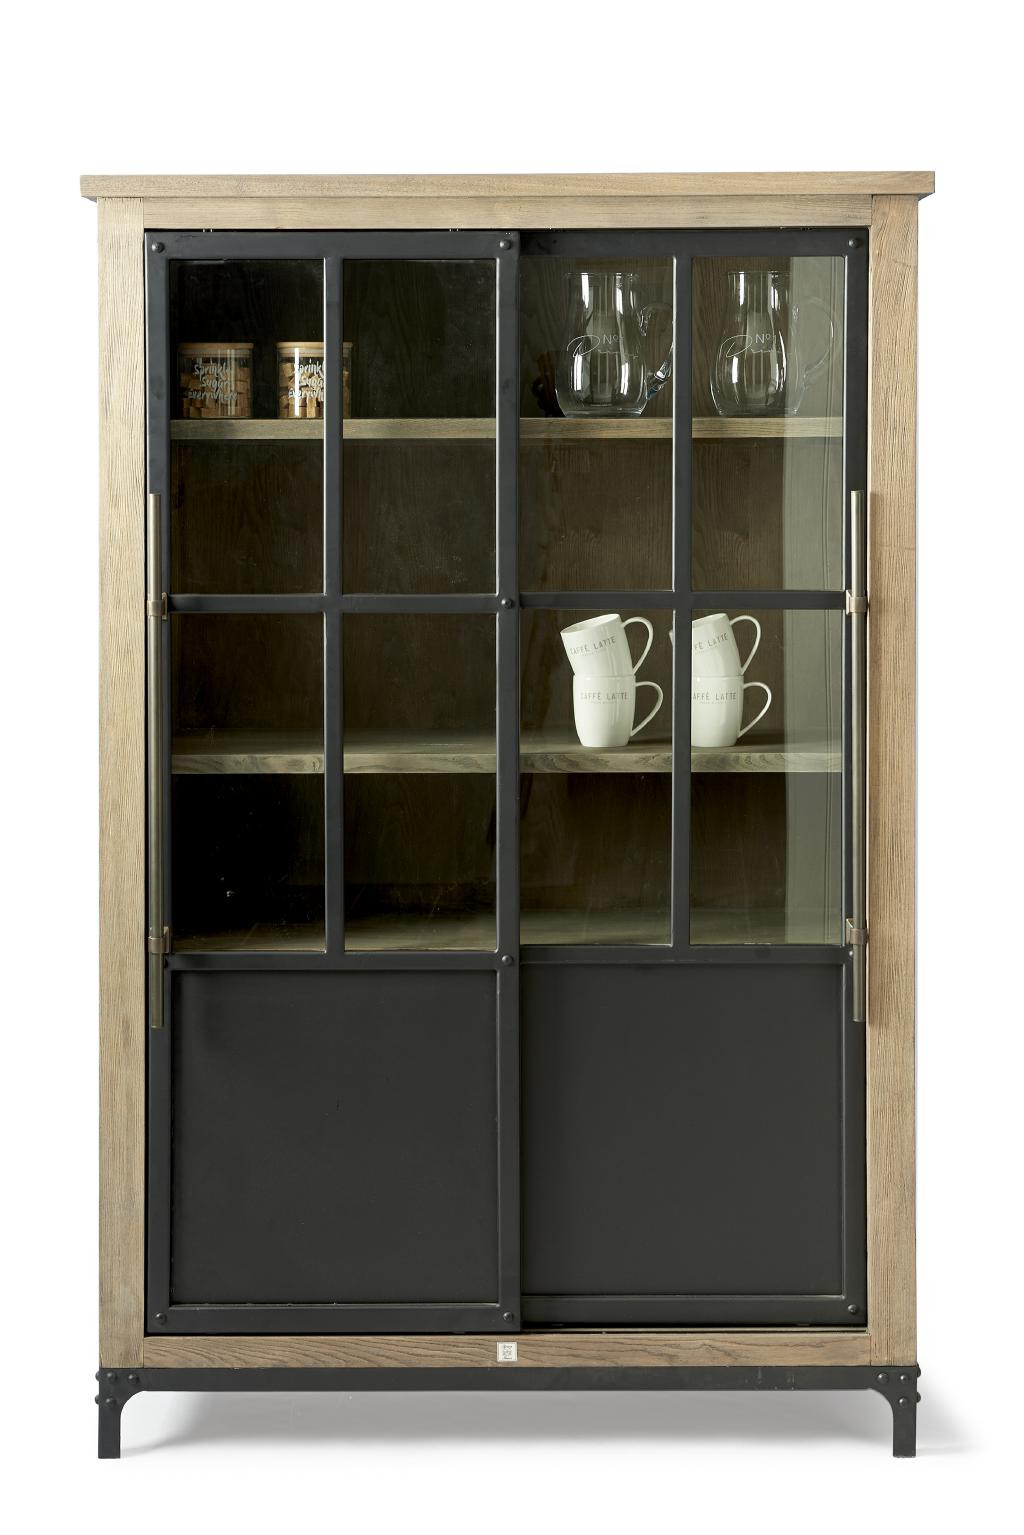 The Hoxton Cabinet Low / Rivièra Maison